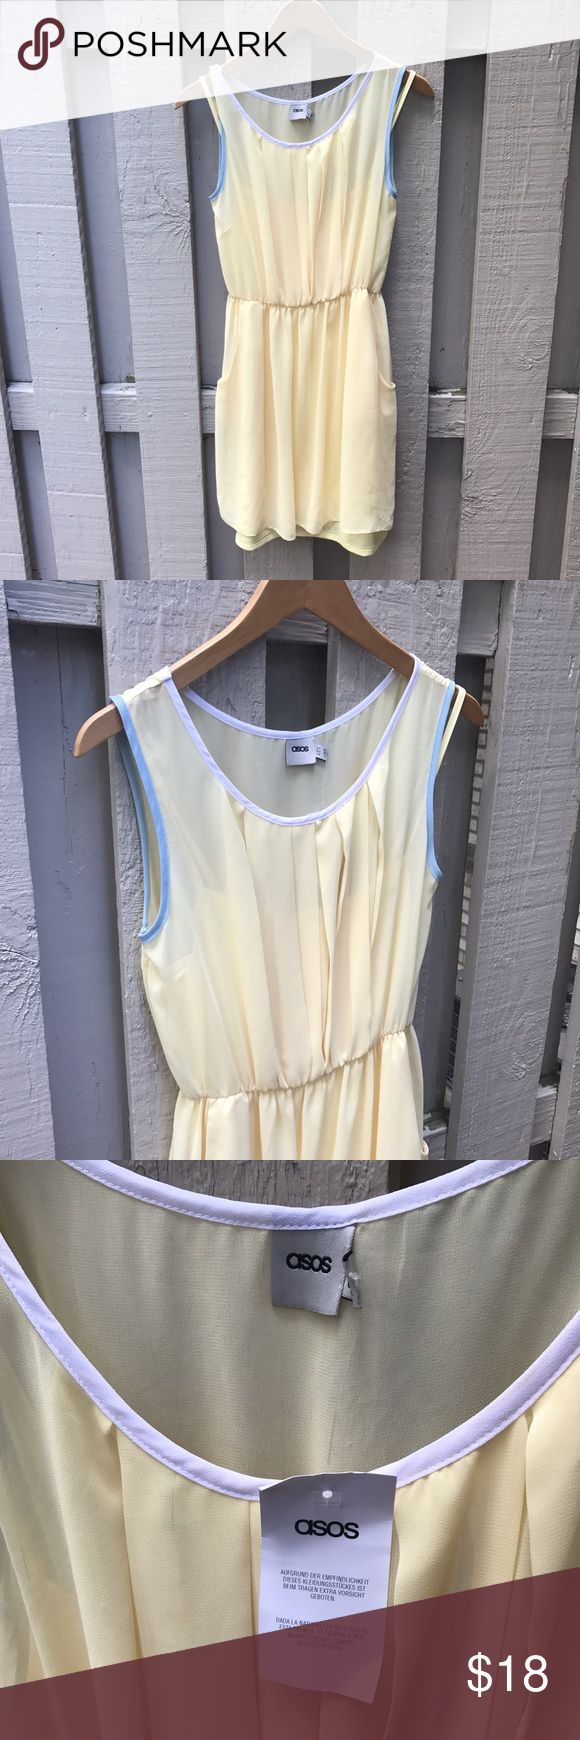 ASOS Summer Dress Beautiful light and airy ASOS butter yellow sheer dress with pleated bust and pockets. Baby blue and white trim on neck and sleeves. Elastic dropped empire waist. Comes with under slip with adjustable straps. Brand new, never worn with tags. 100% polyester. US size 6, UK size 10. Length 34 inches. ASOS Dresses